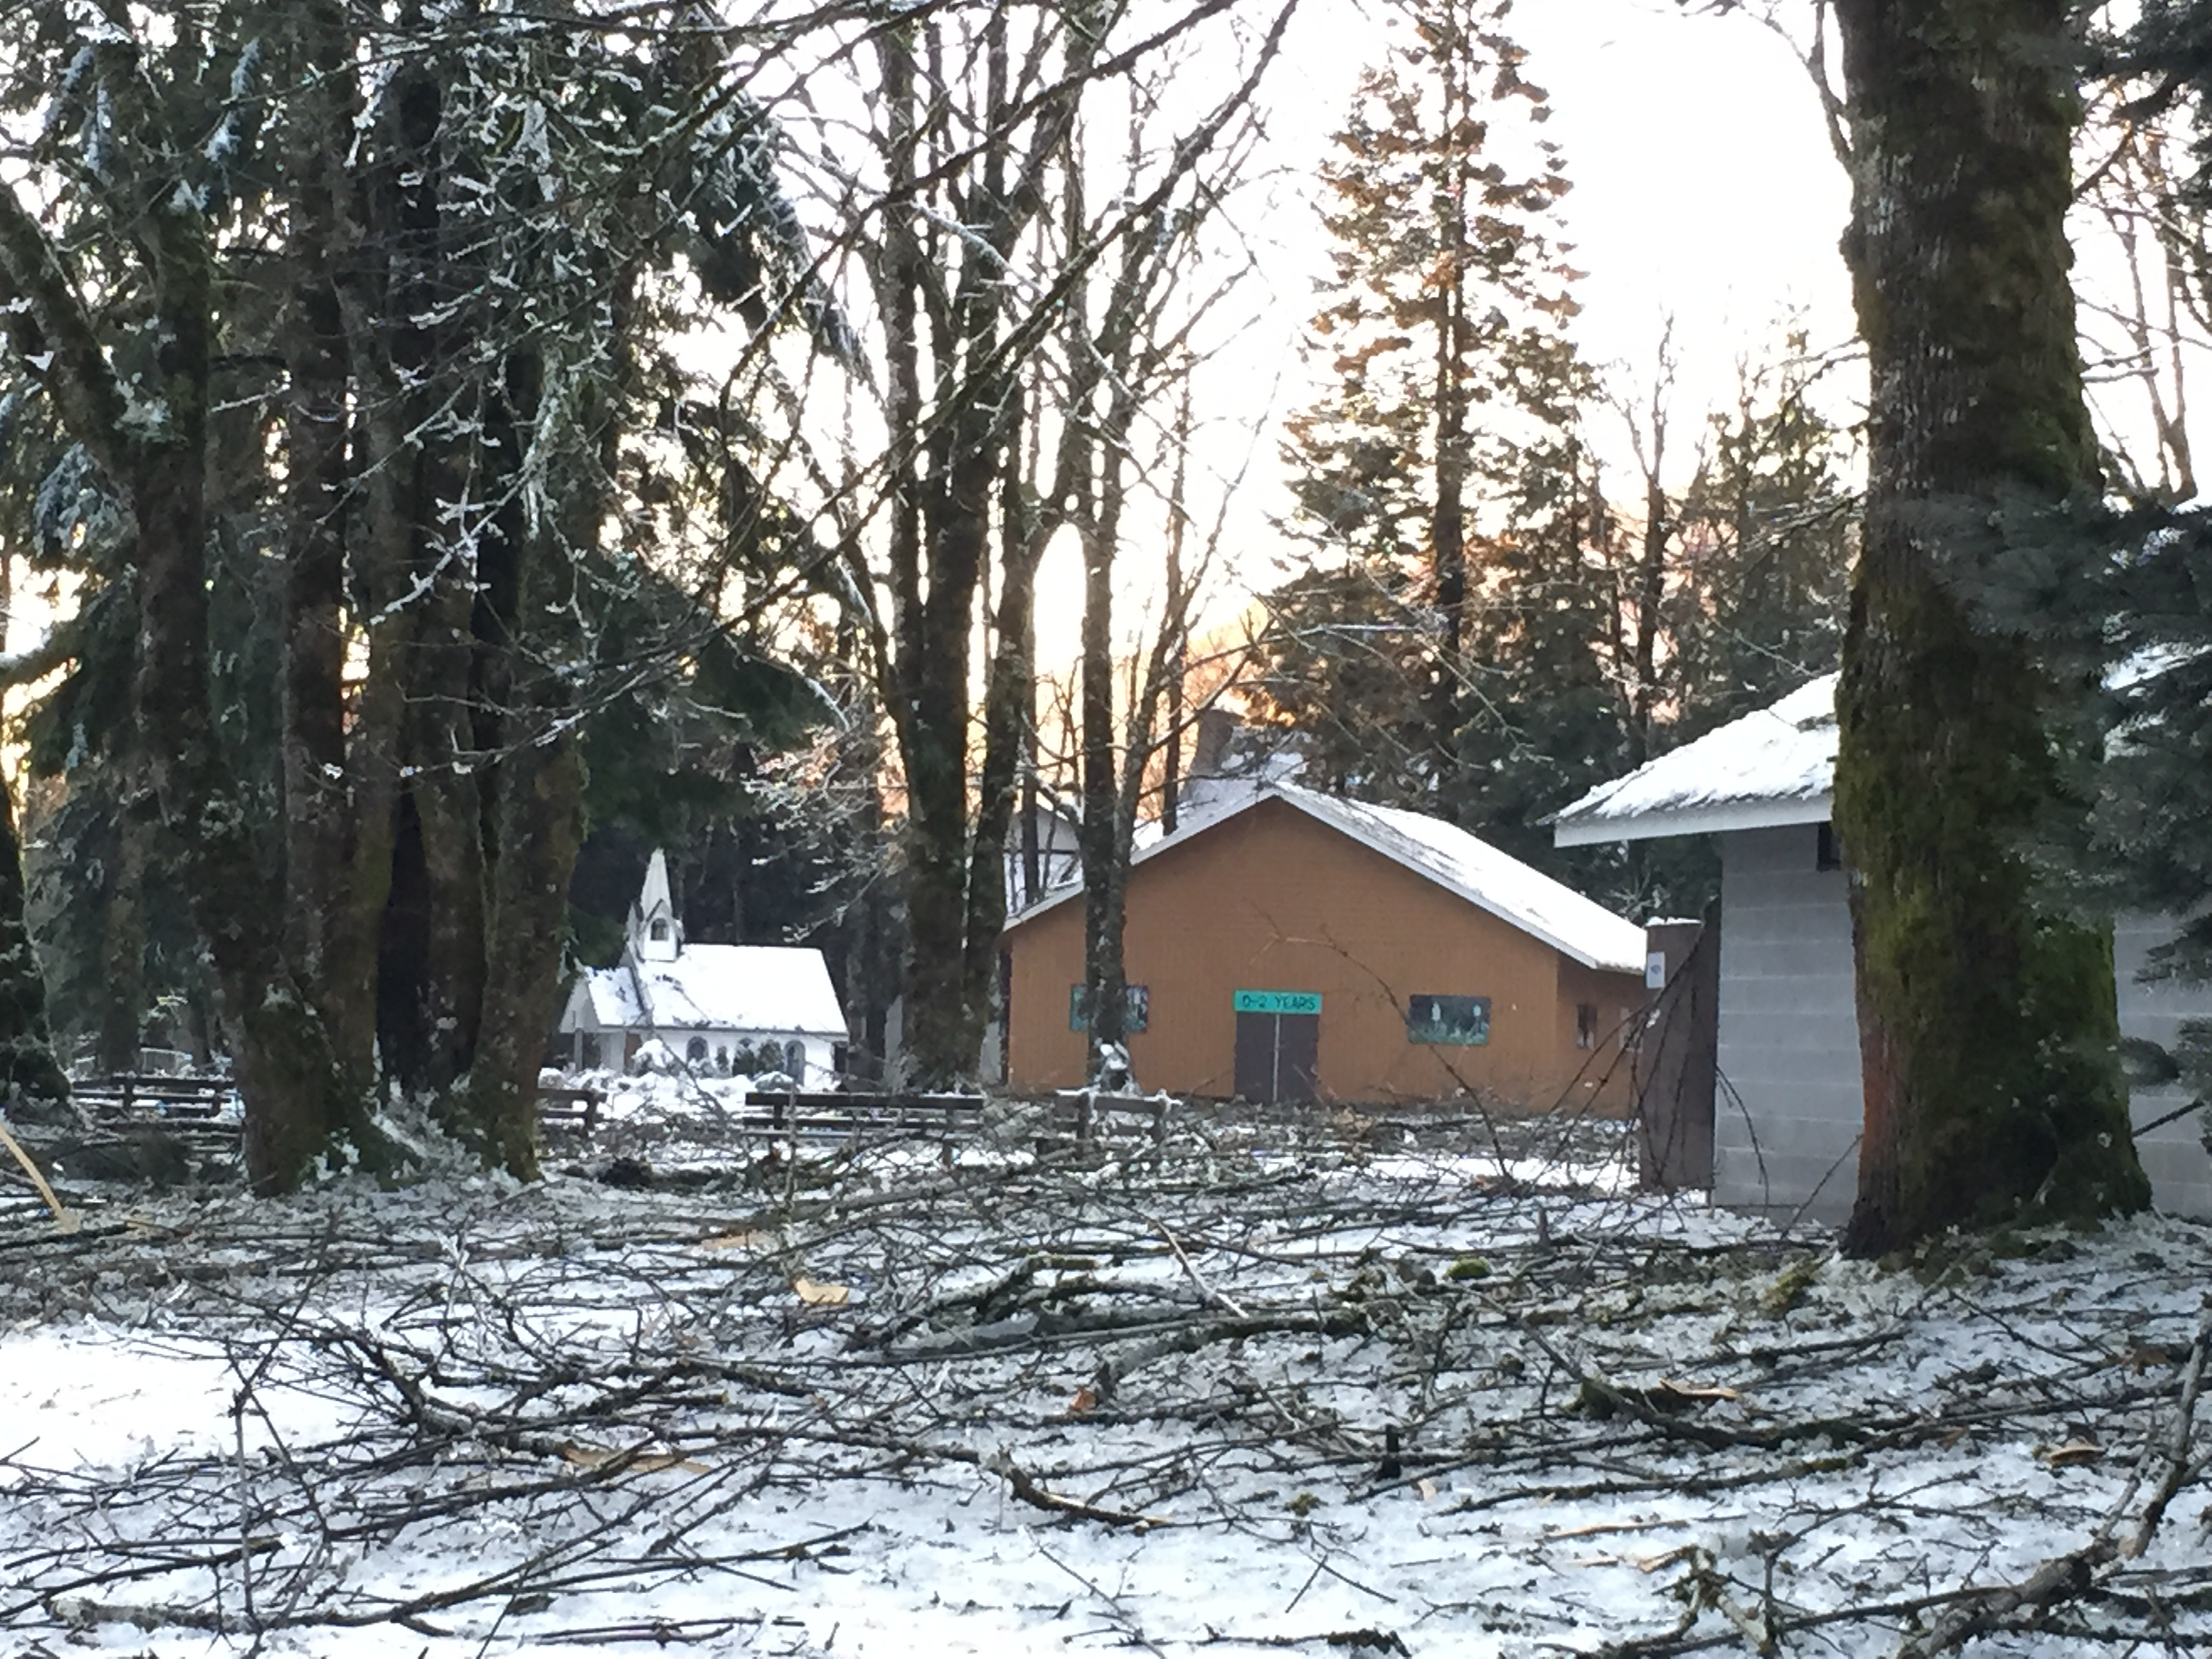 Camp Hope Ice Storm 2015